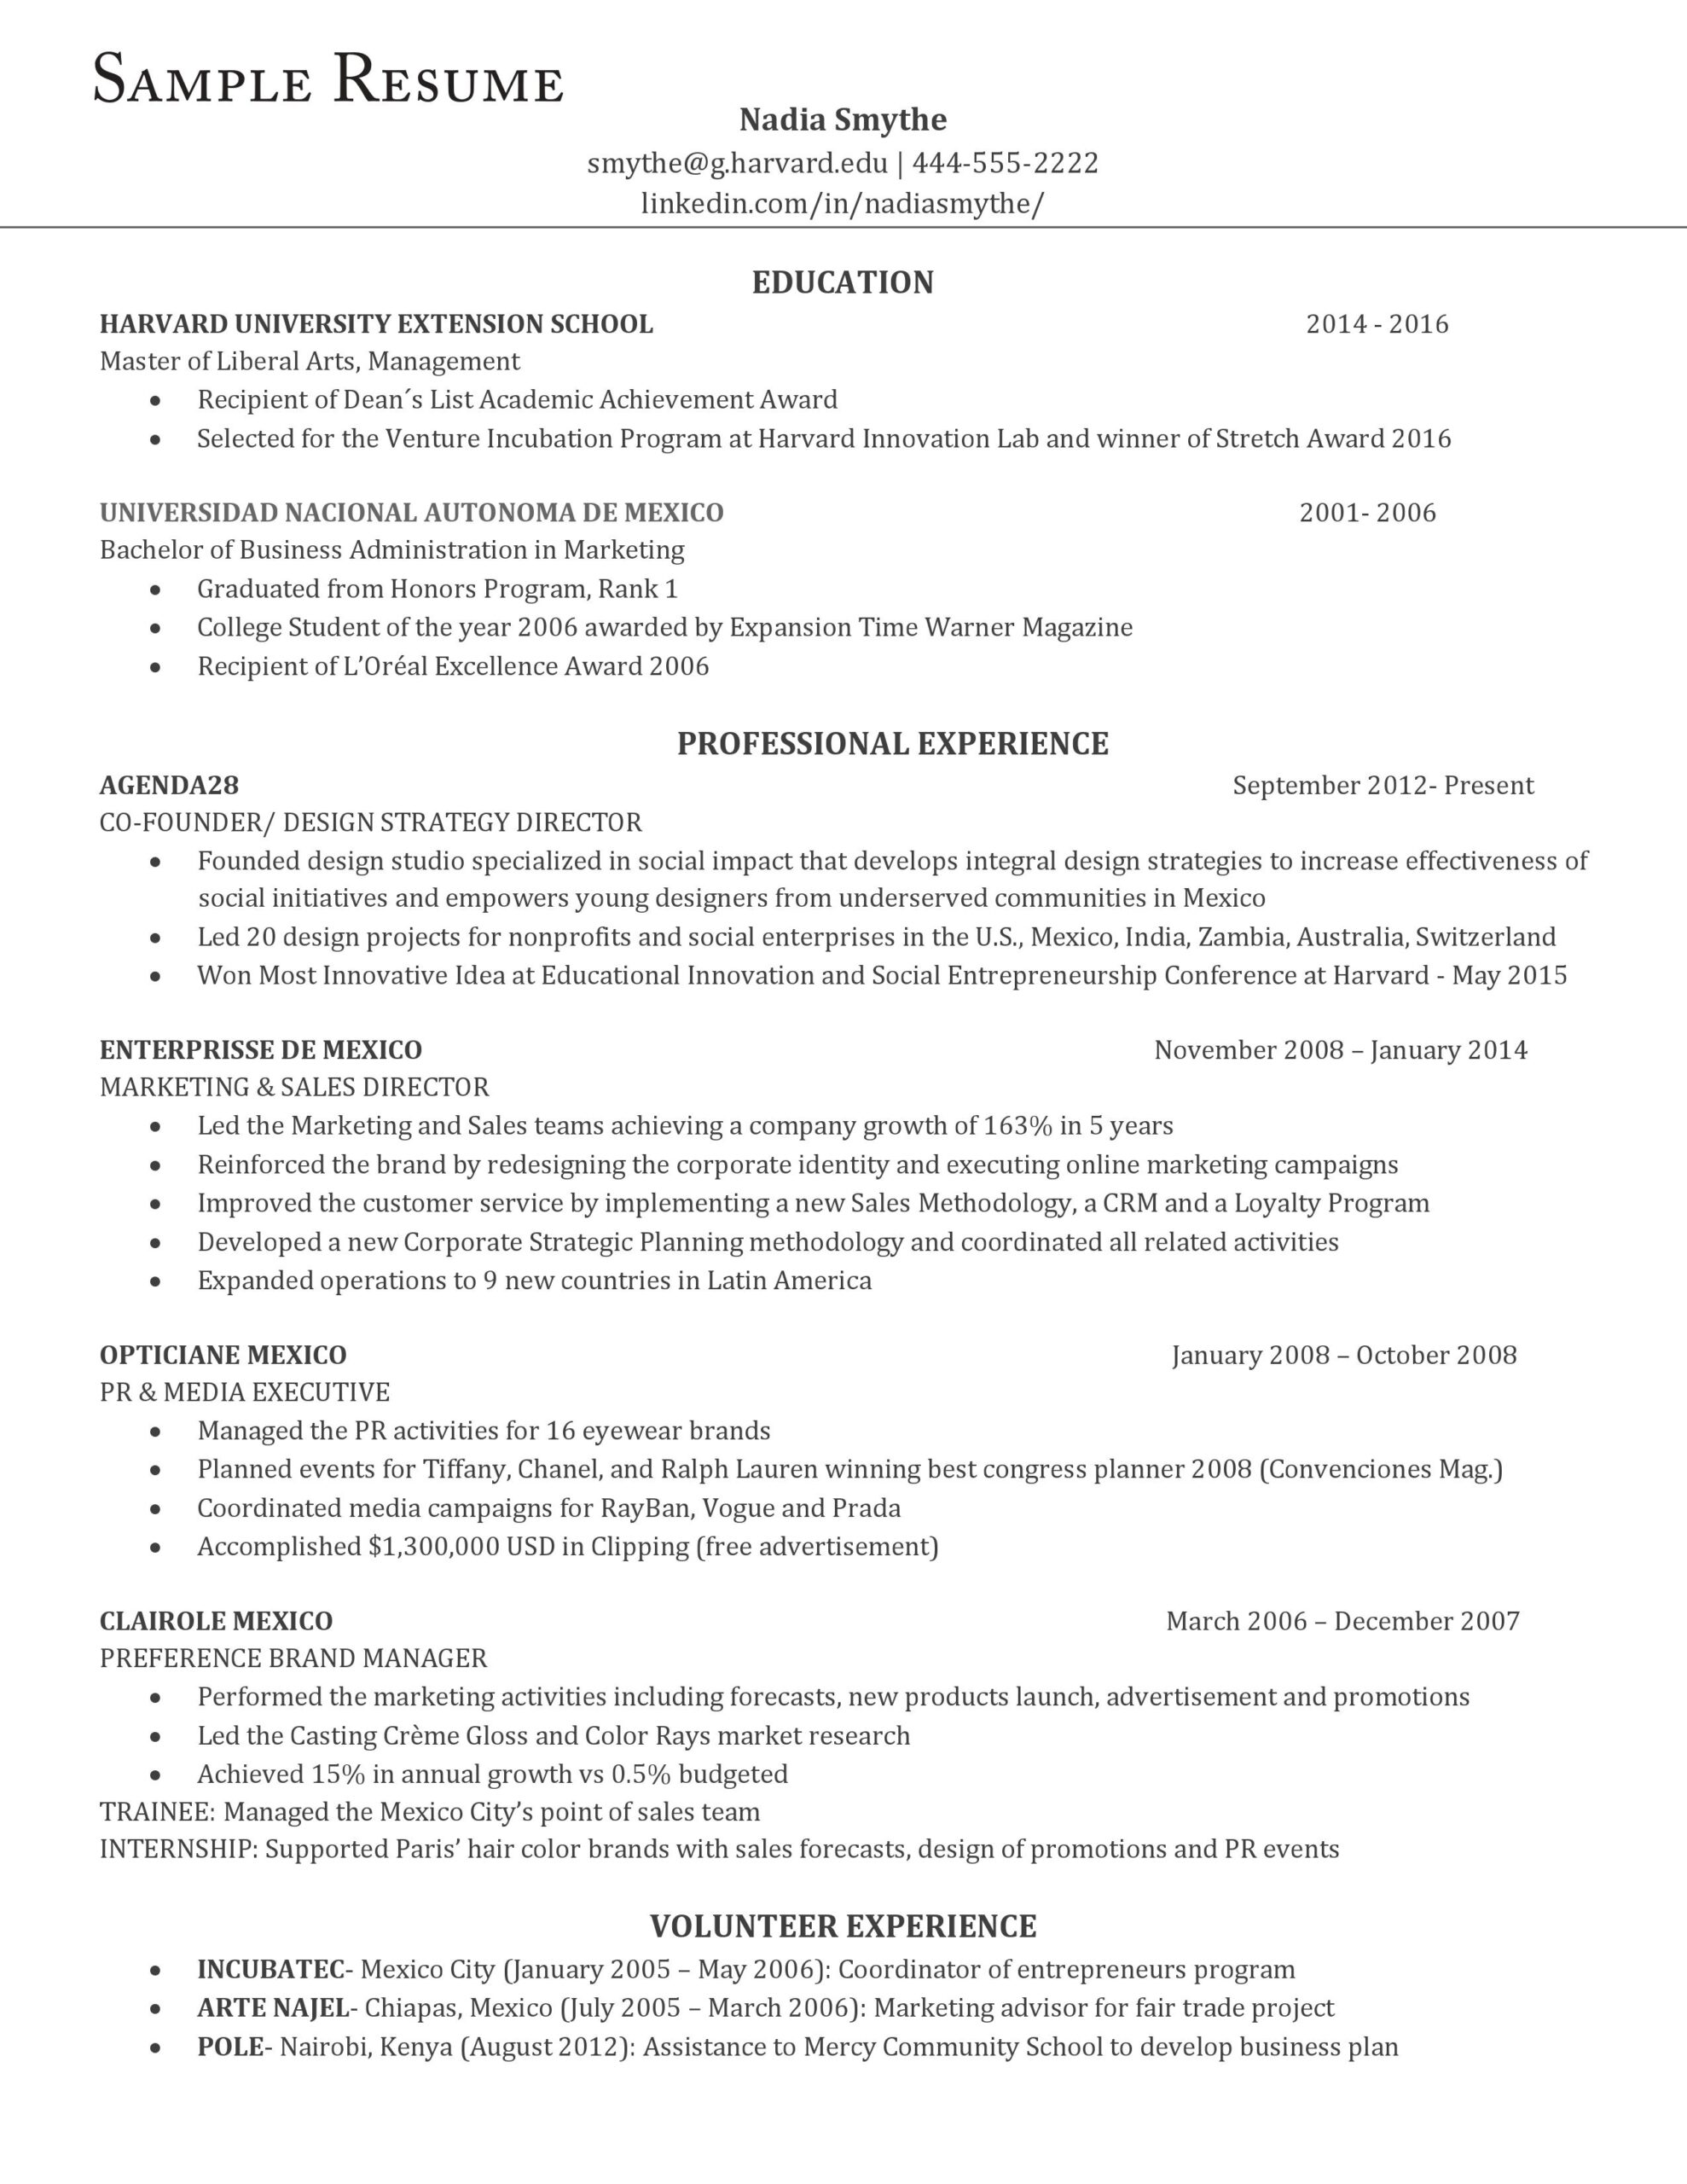 an example of the perfect resume according to harvard career experts great one examples Resume Great One Page Resume Examples